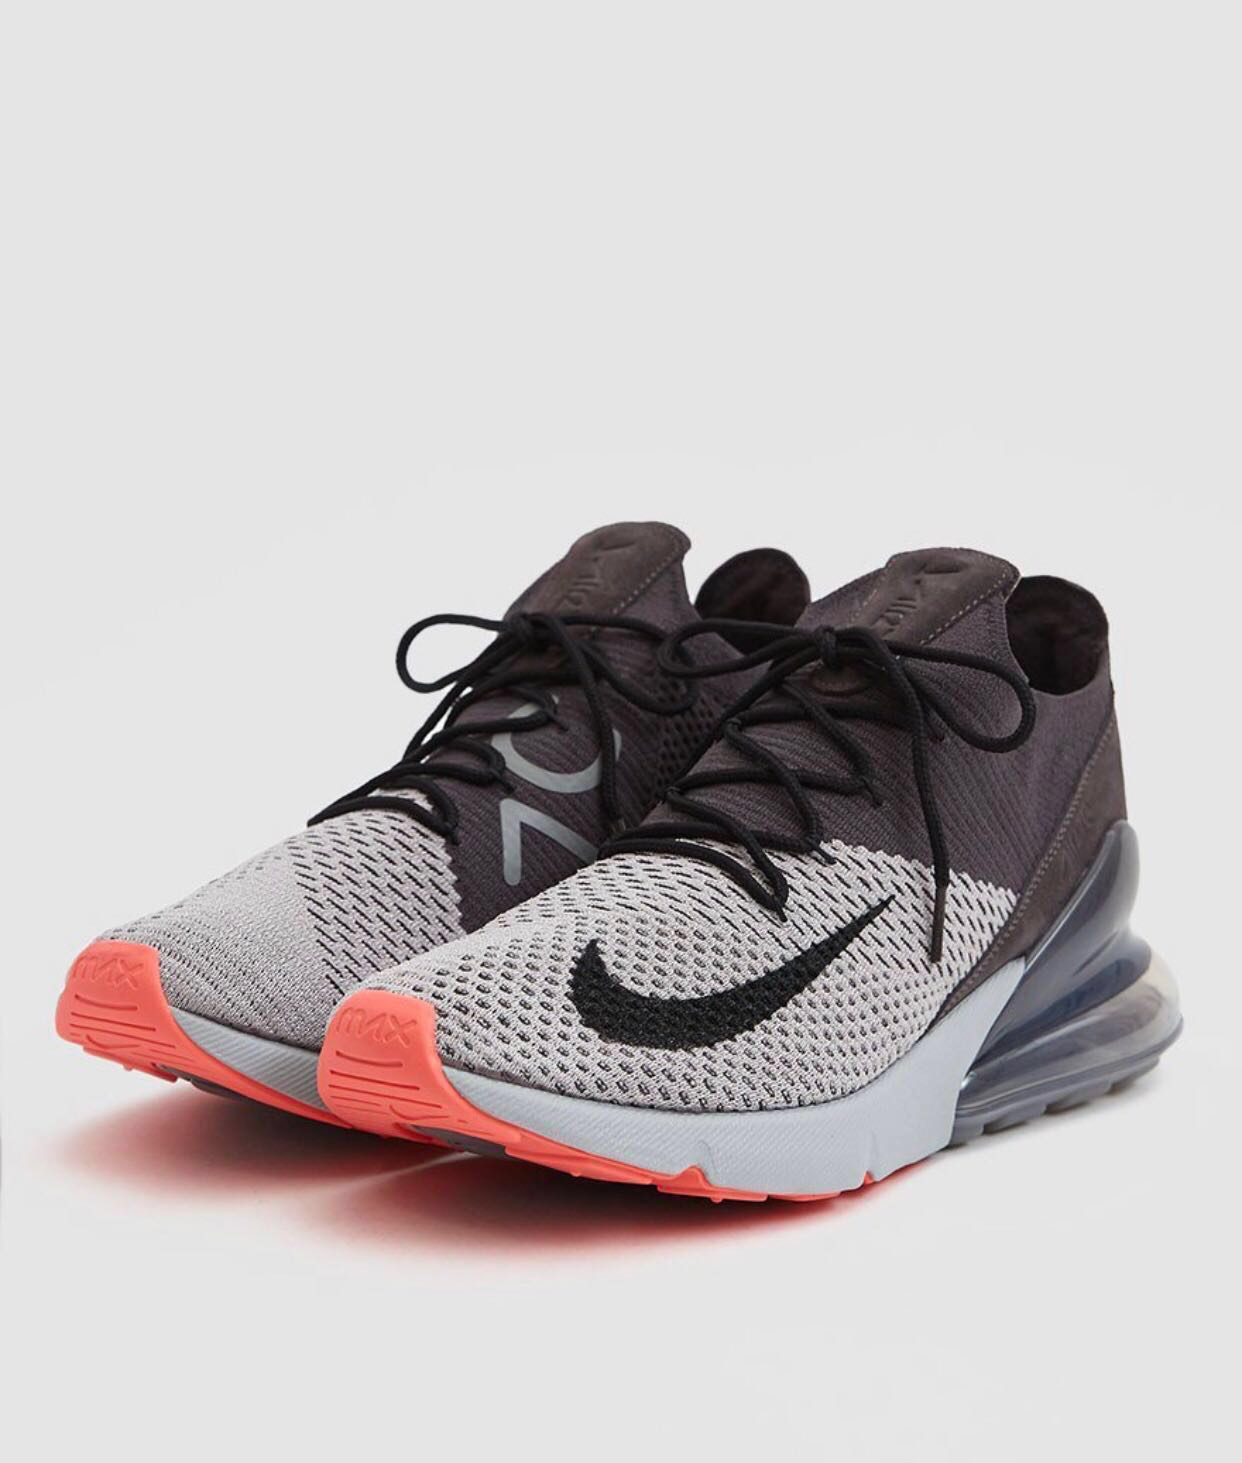 2ff6381c60 Nike Air Max 270 Flyknit, Men's Fashion, Footwear, Sneakers on Carousell